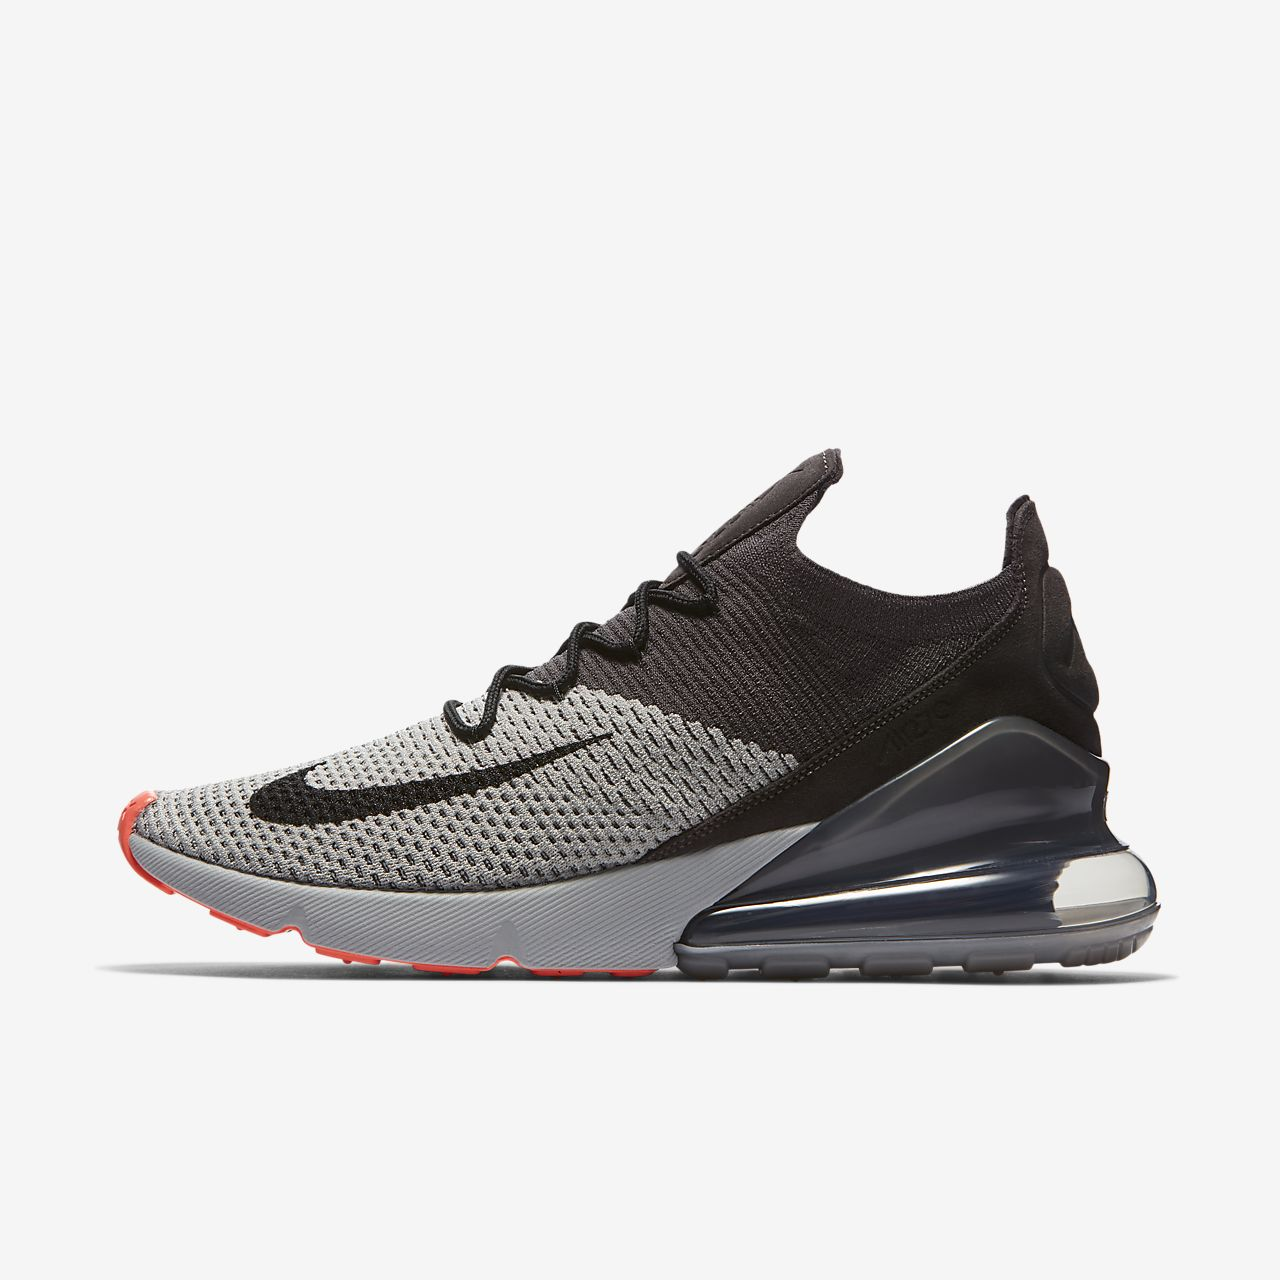 1386c4f68dbf8f Nike Air Max 270 Flyknit Men s Shoe. Nike.com IN